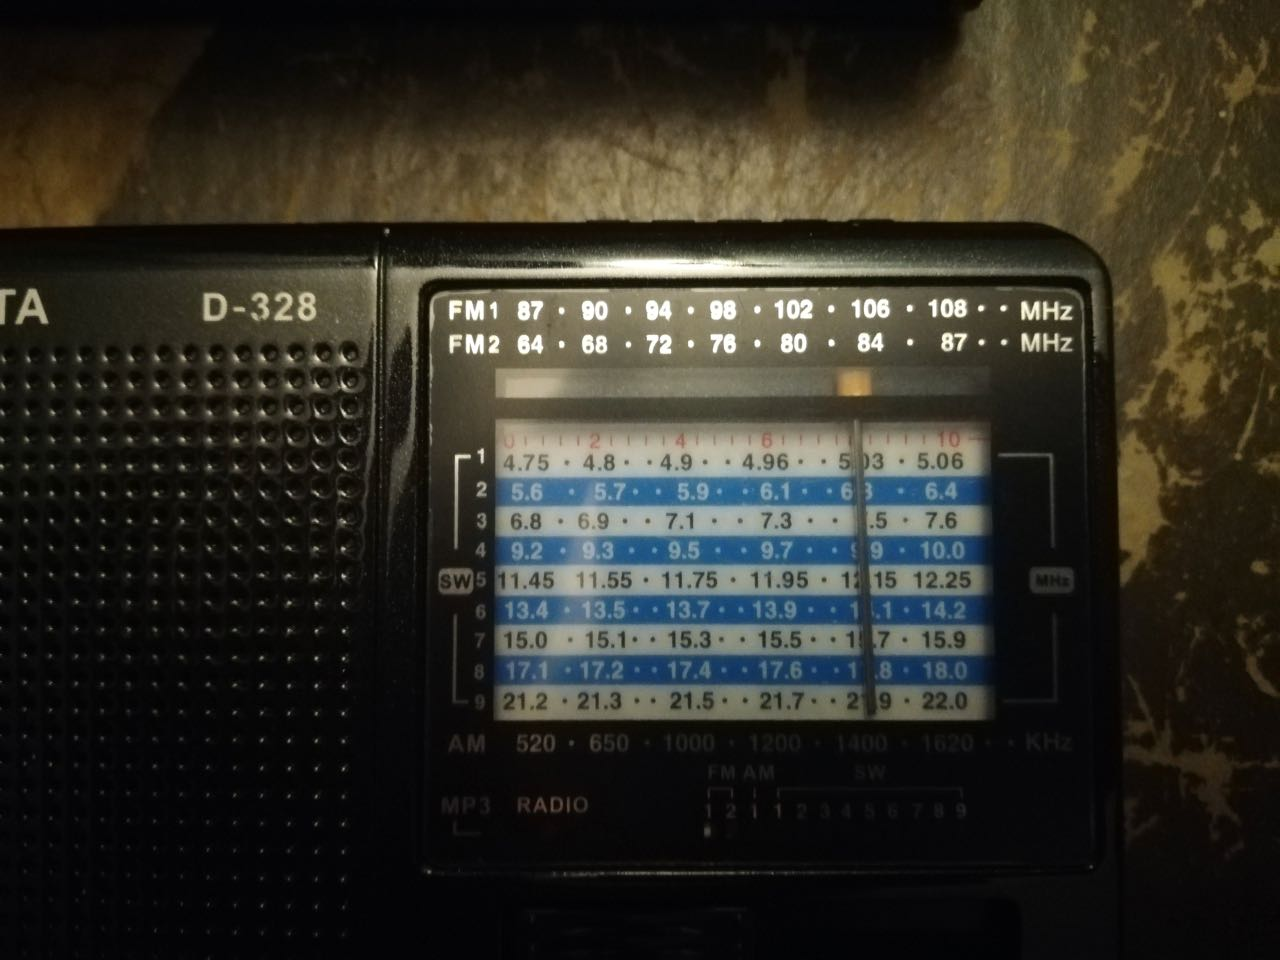 Xhdata The Swling Post Analog Integrated Circuits Batteries Not Needed Mitre I Dont Normally Use Radios So Tuning D 328 Was A Bit Of Challenge Cramped Display Provided Little Feedback And Crooked Bar